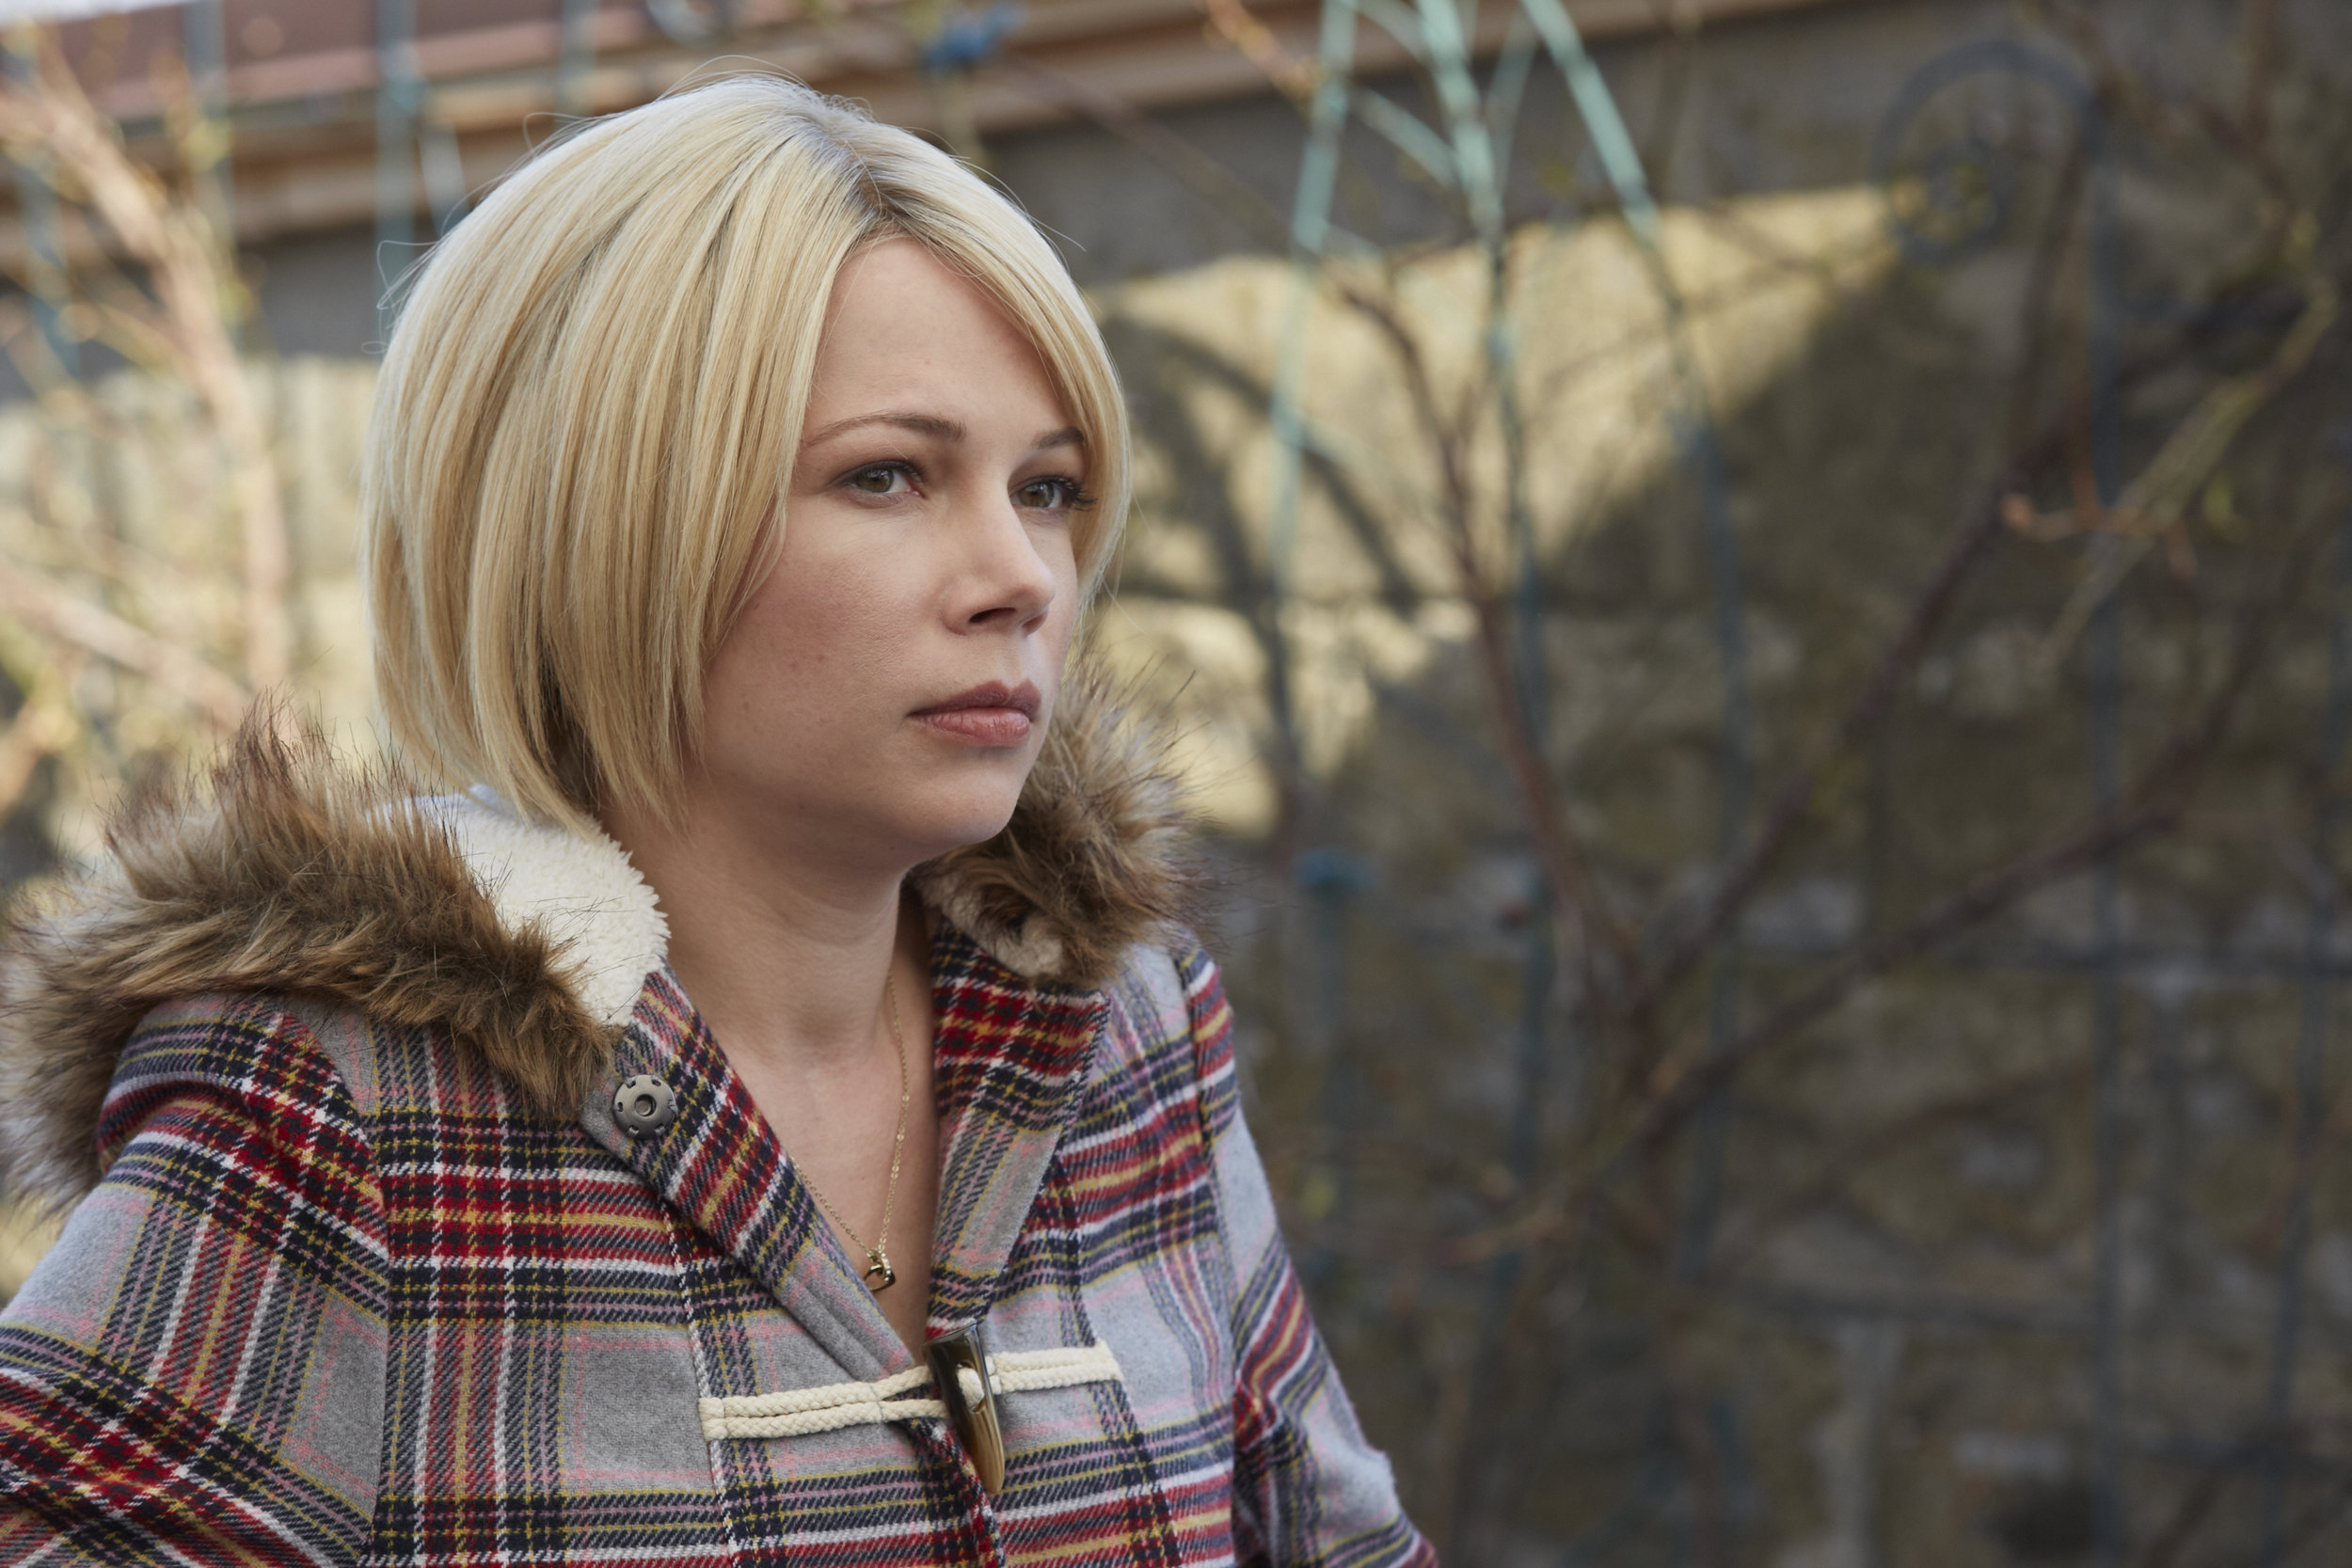 Michelle Williams has racked up the second most supporting actress wins next to Viola Davis